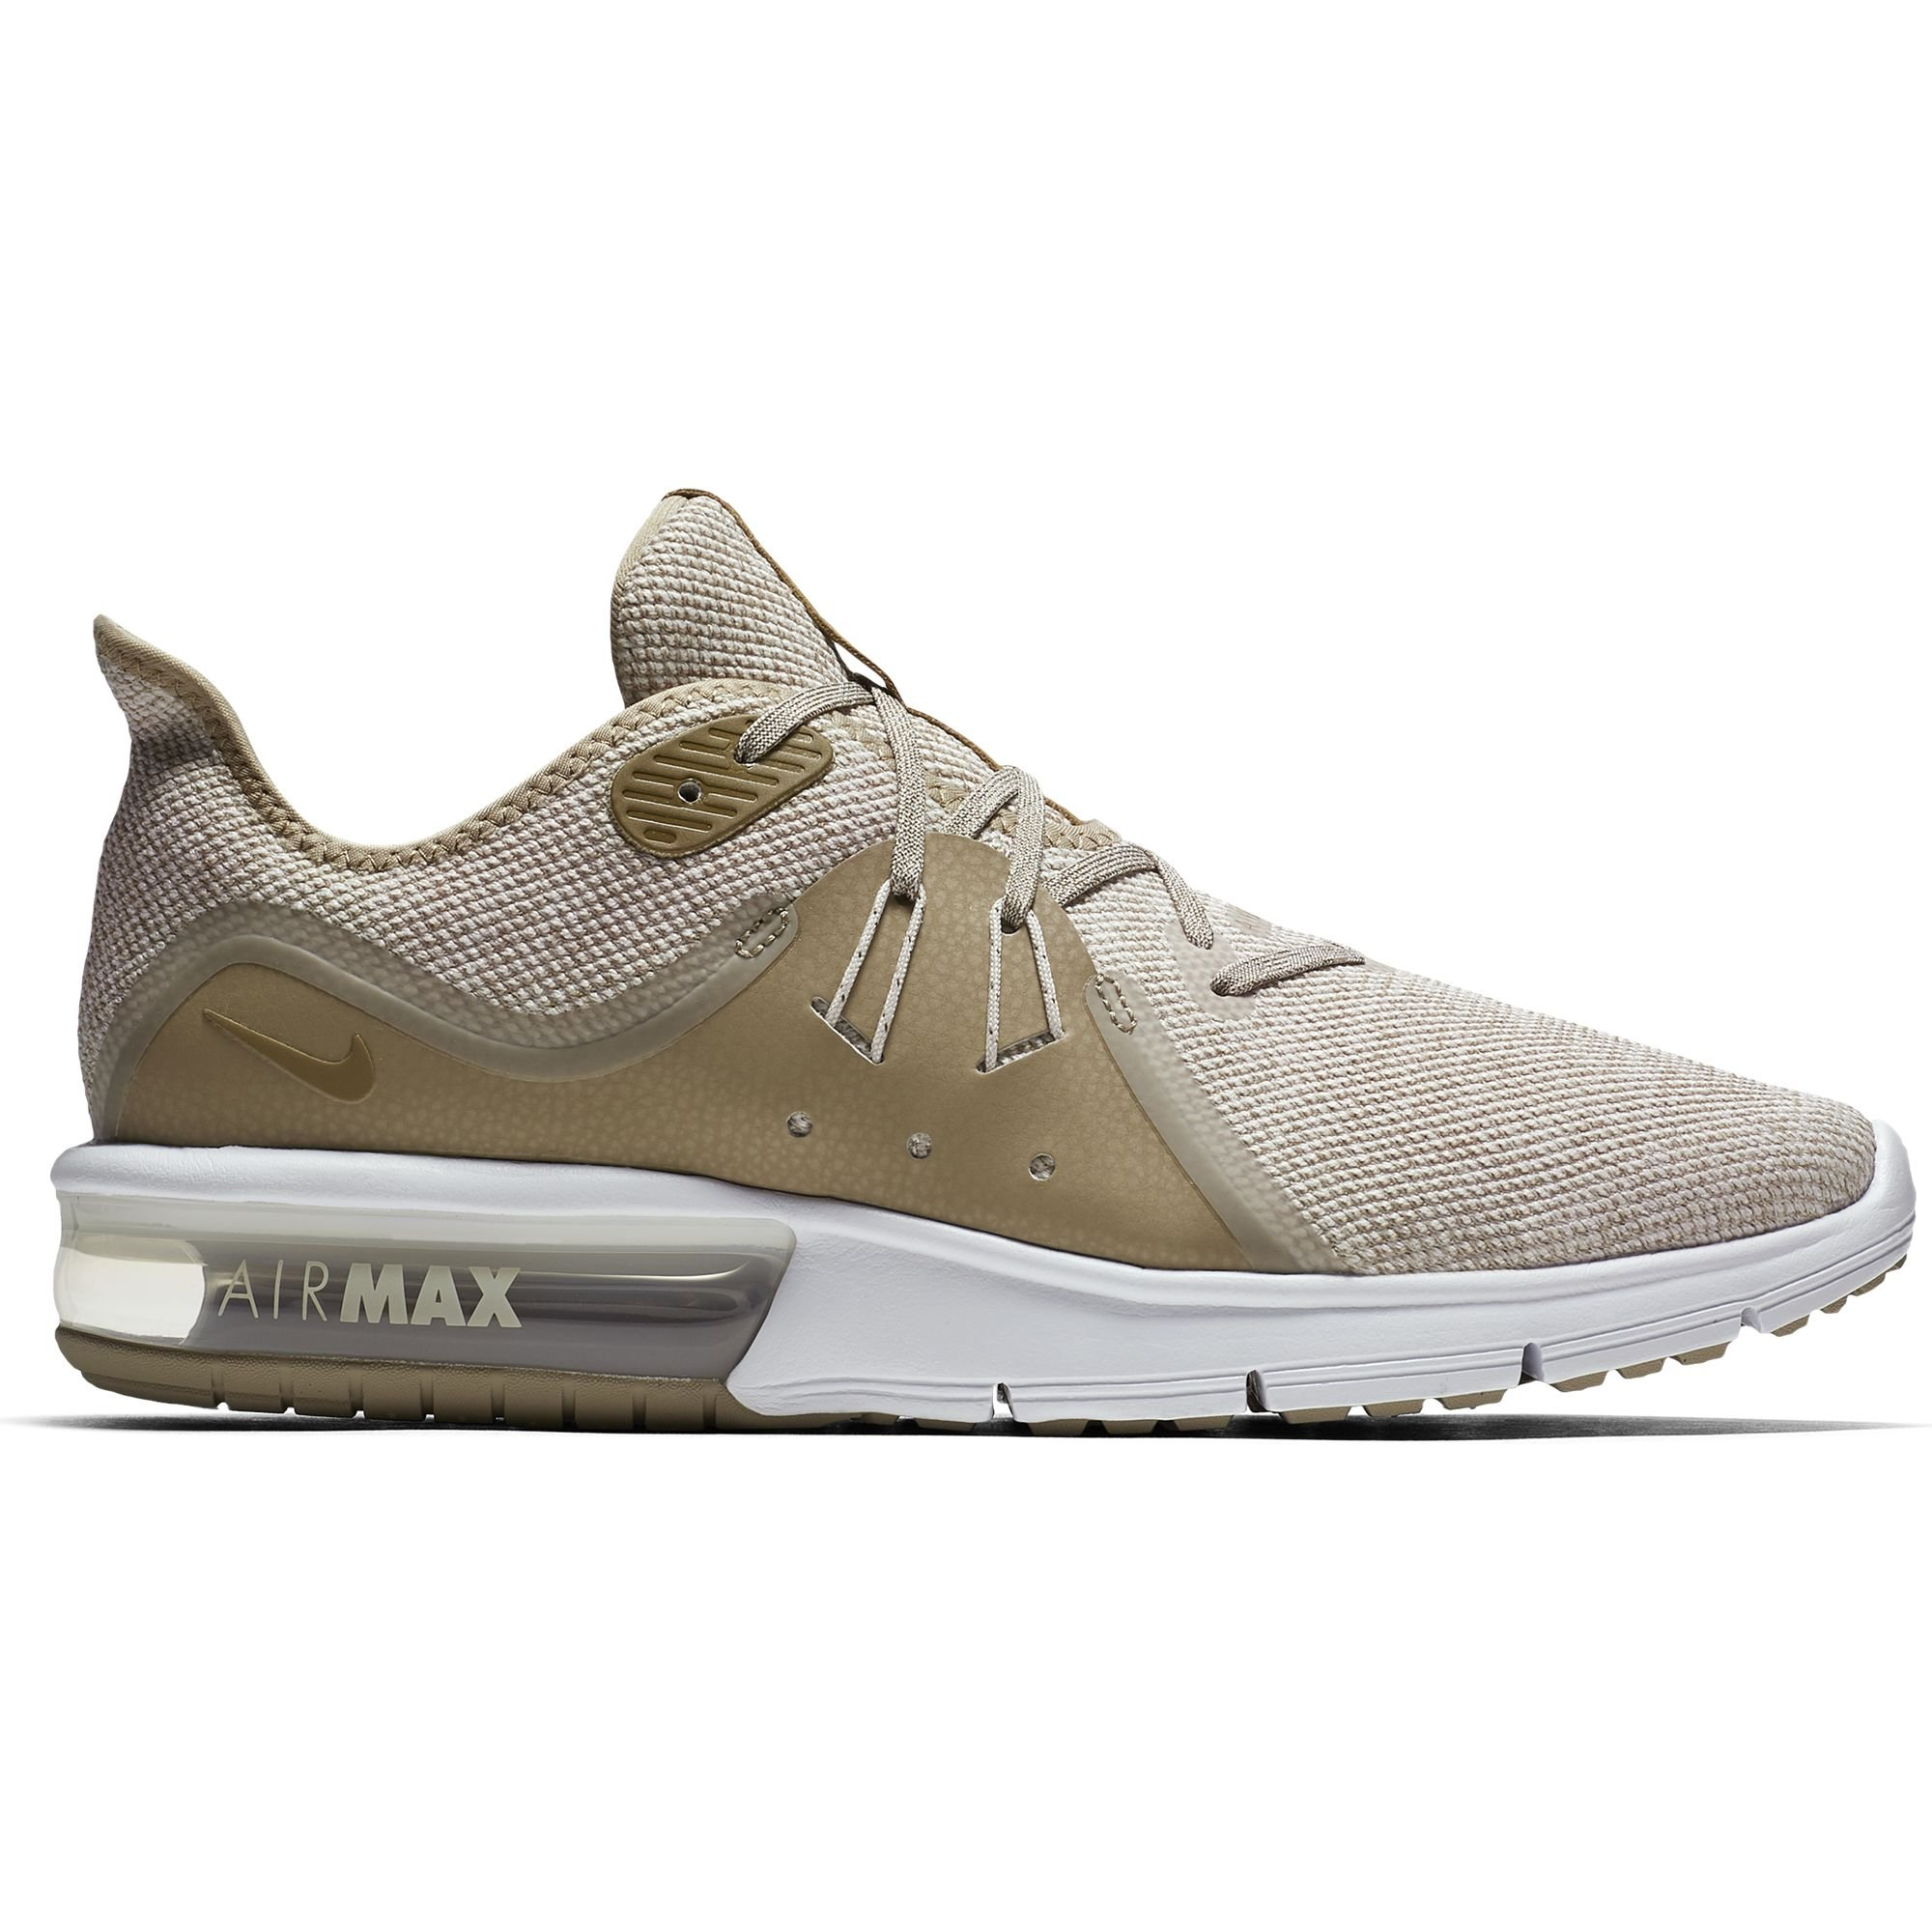 527a90fb7b7 Galleon - Nike Men s Air Max Sequent 3 Running Shoe Desert Sand Lichen  Brown Khaki White Size 9 M US